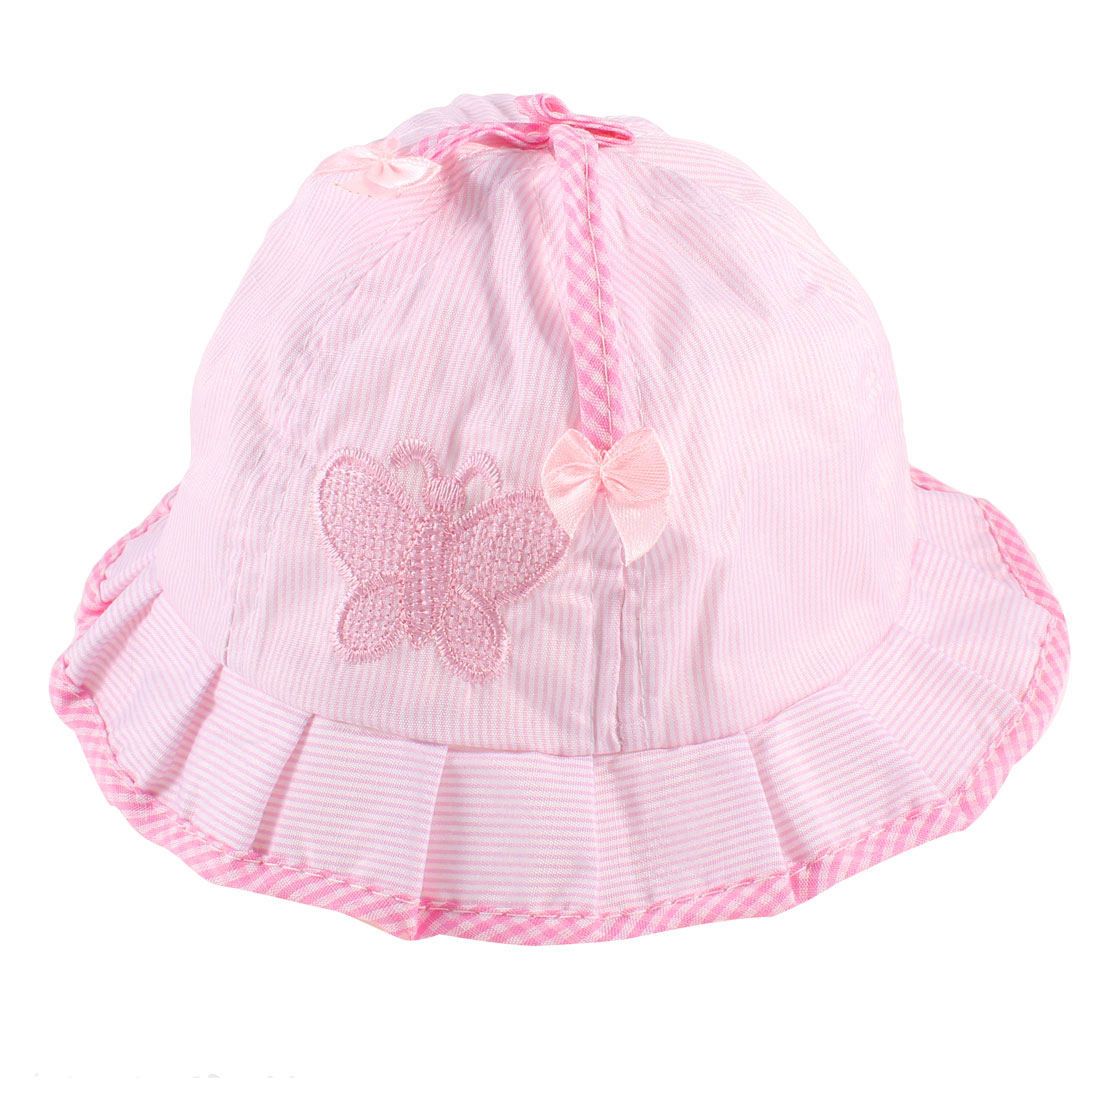 Stripes Printed Embroidered Butterfly Accent Bob Hat Red White for 0-6 Months Baby Girl